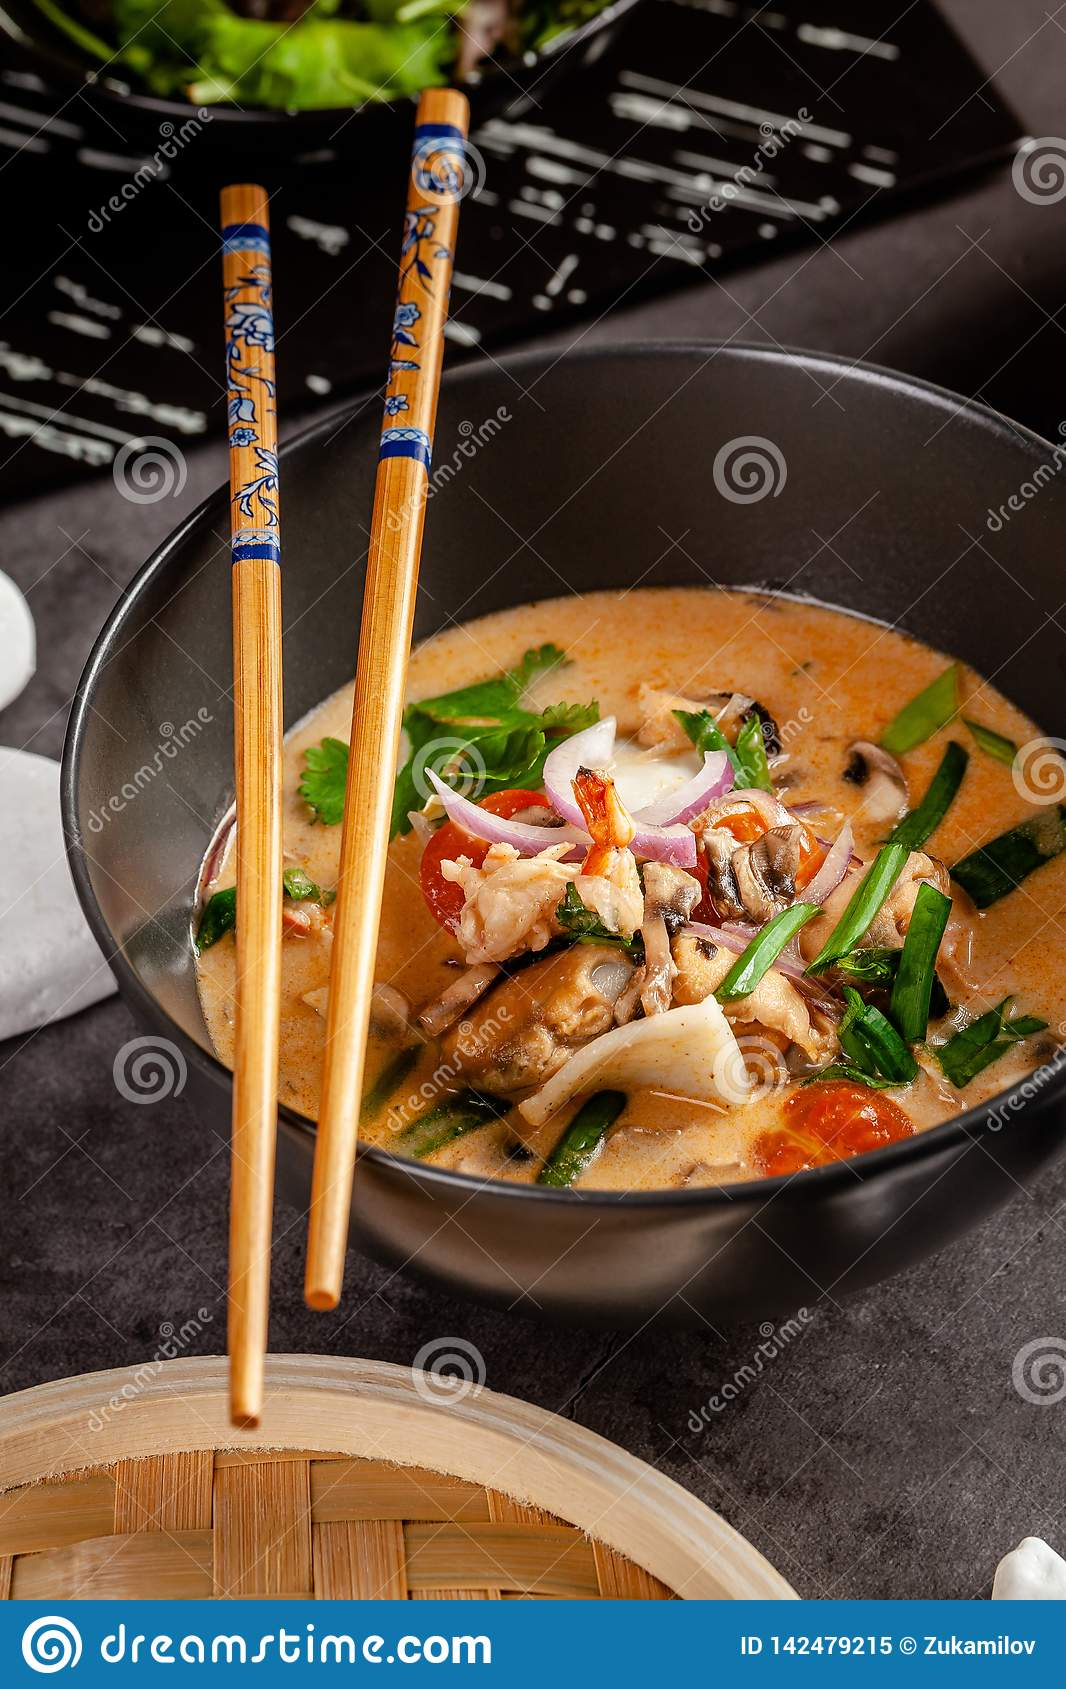 Cuisine Yam Pan Asian Cuisine Concept Japanese Miso Soup Tom Yam Kung With